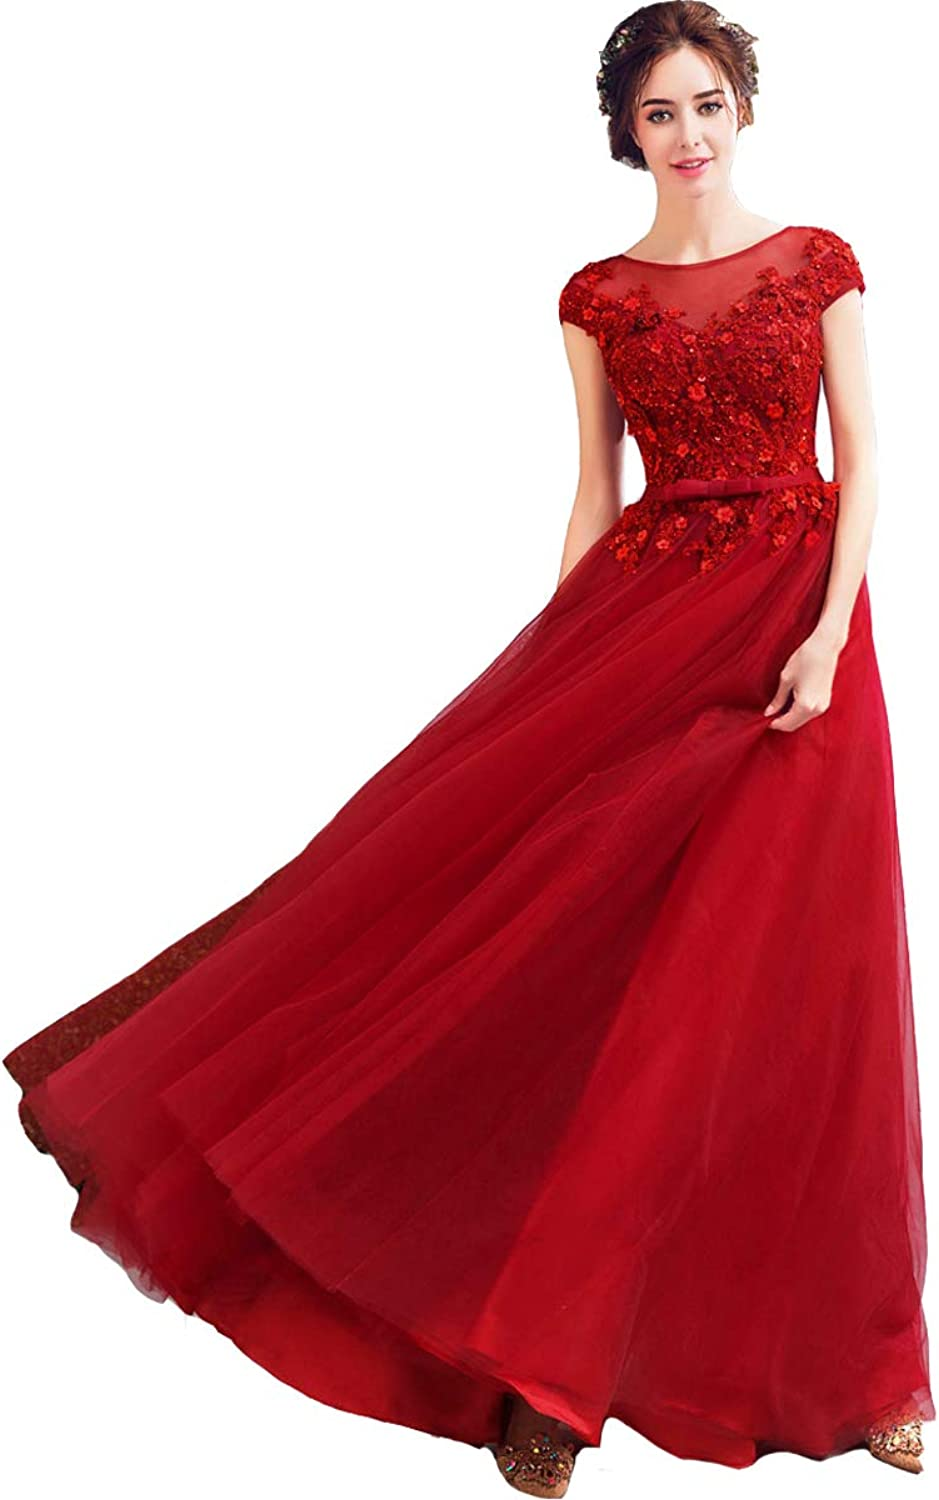 Kivary Tulle Bateau Beaded Lace Appliques Floral Long Formal Evening Prom Dress